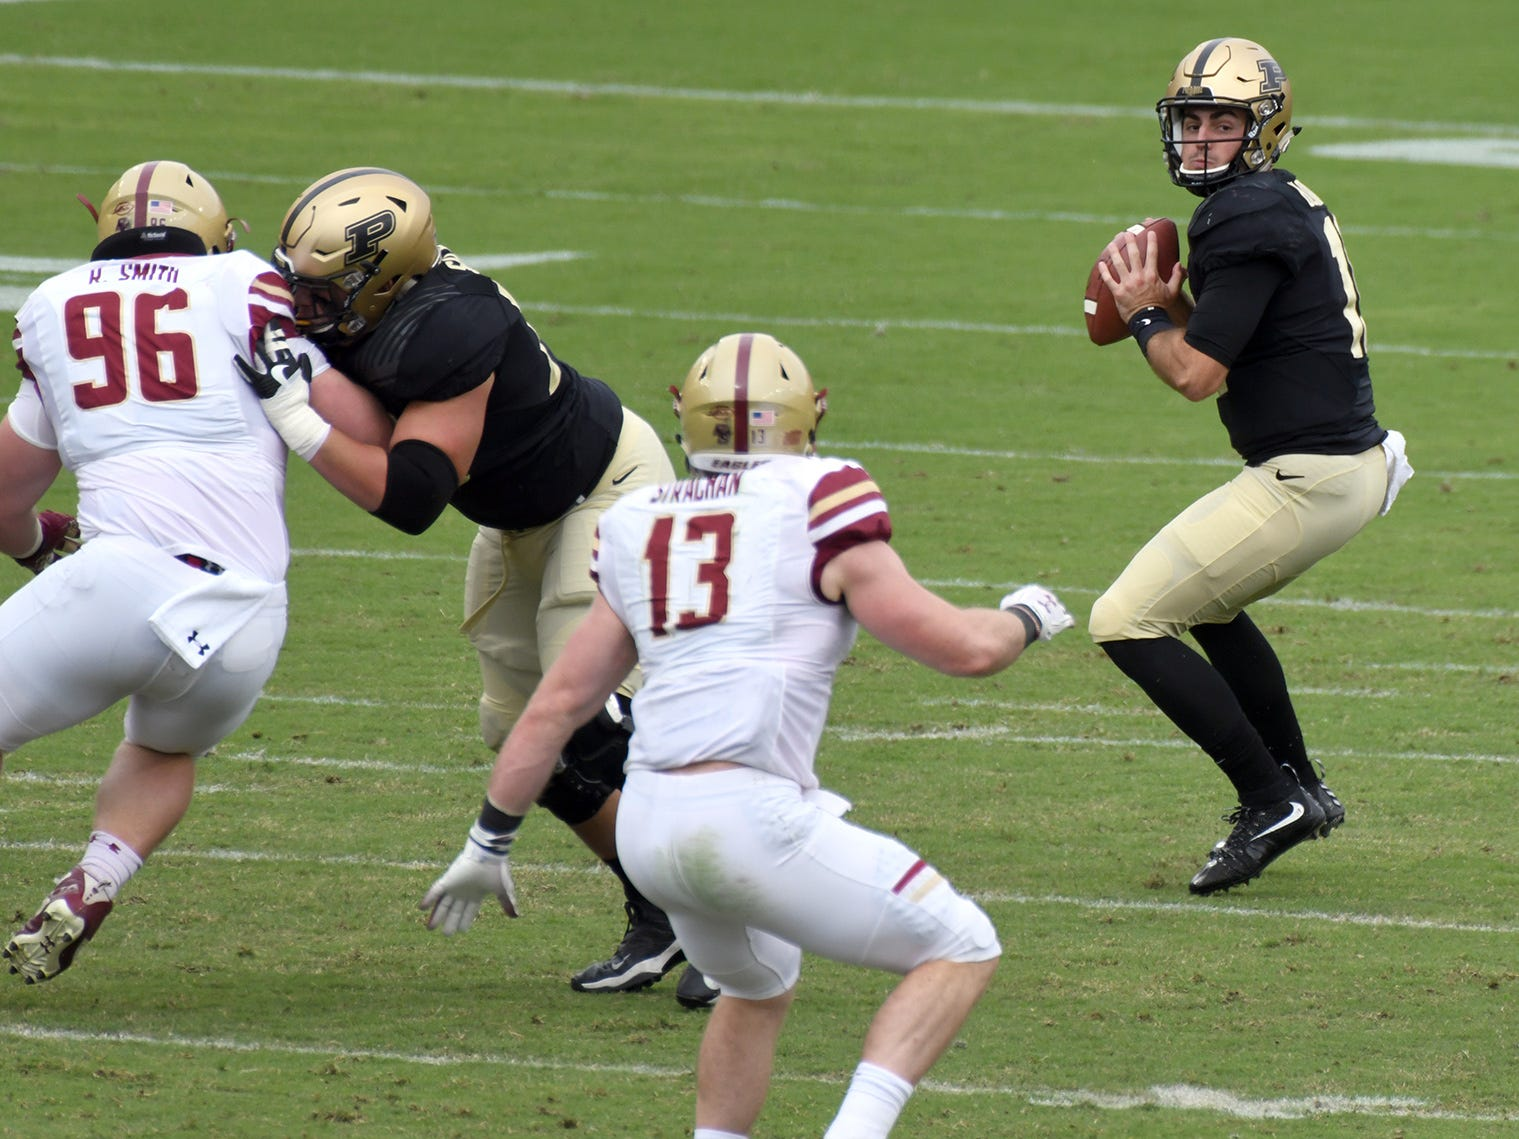 Purdue's David Blough in  the pocket in Purdue's 30-13 win in West Lafayette on Saturday September 22, 2018.